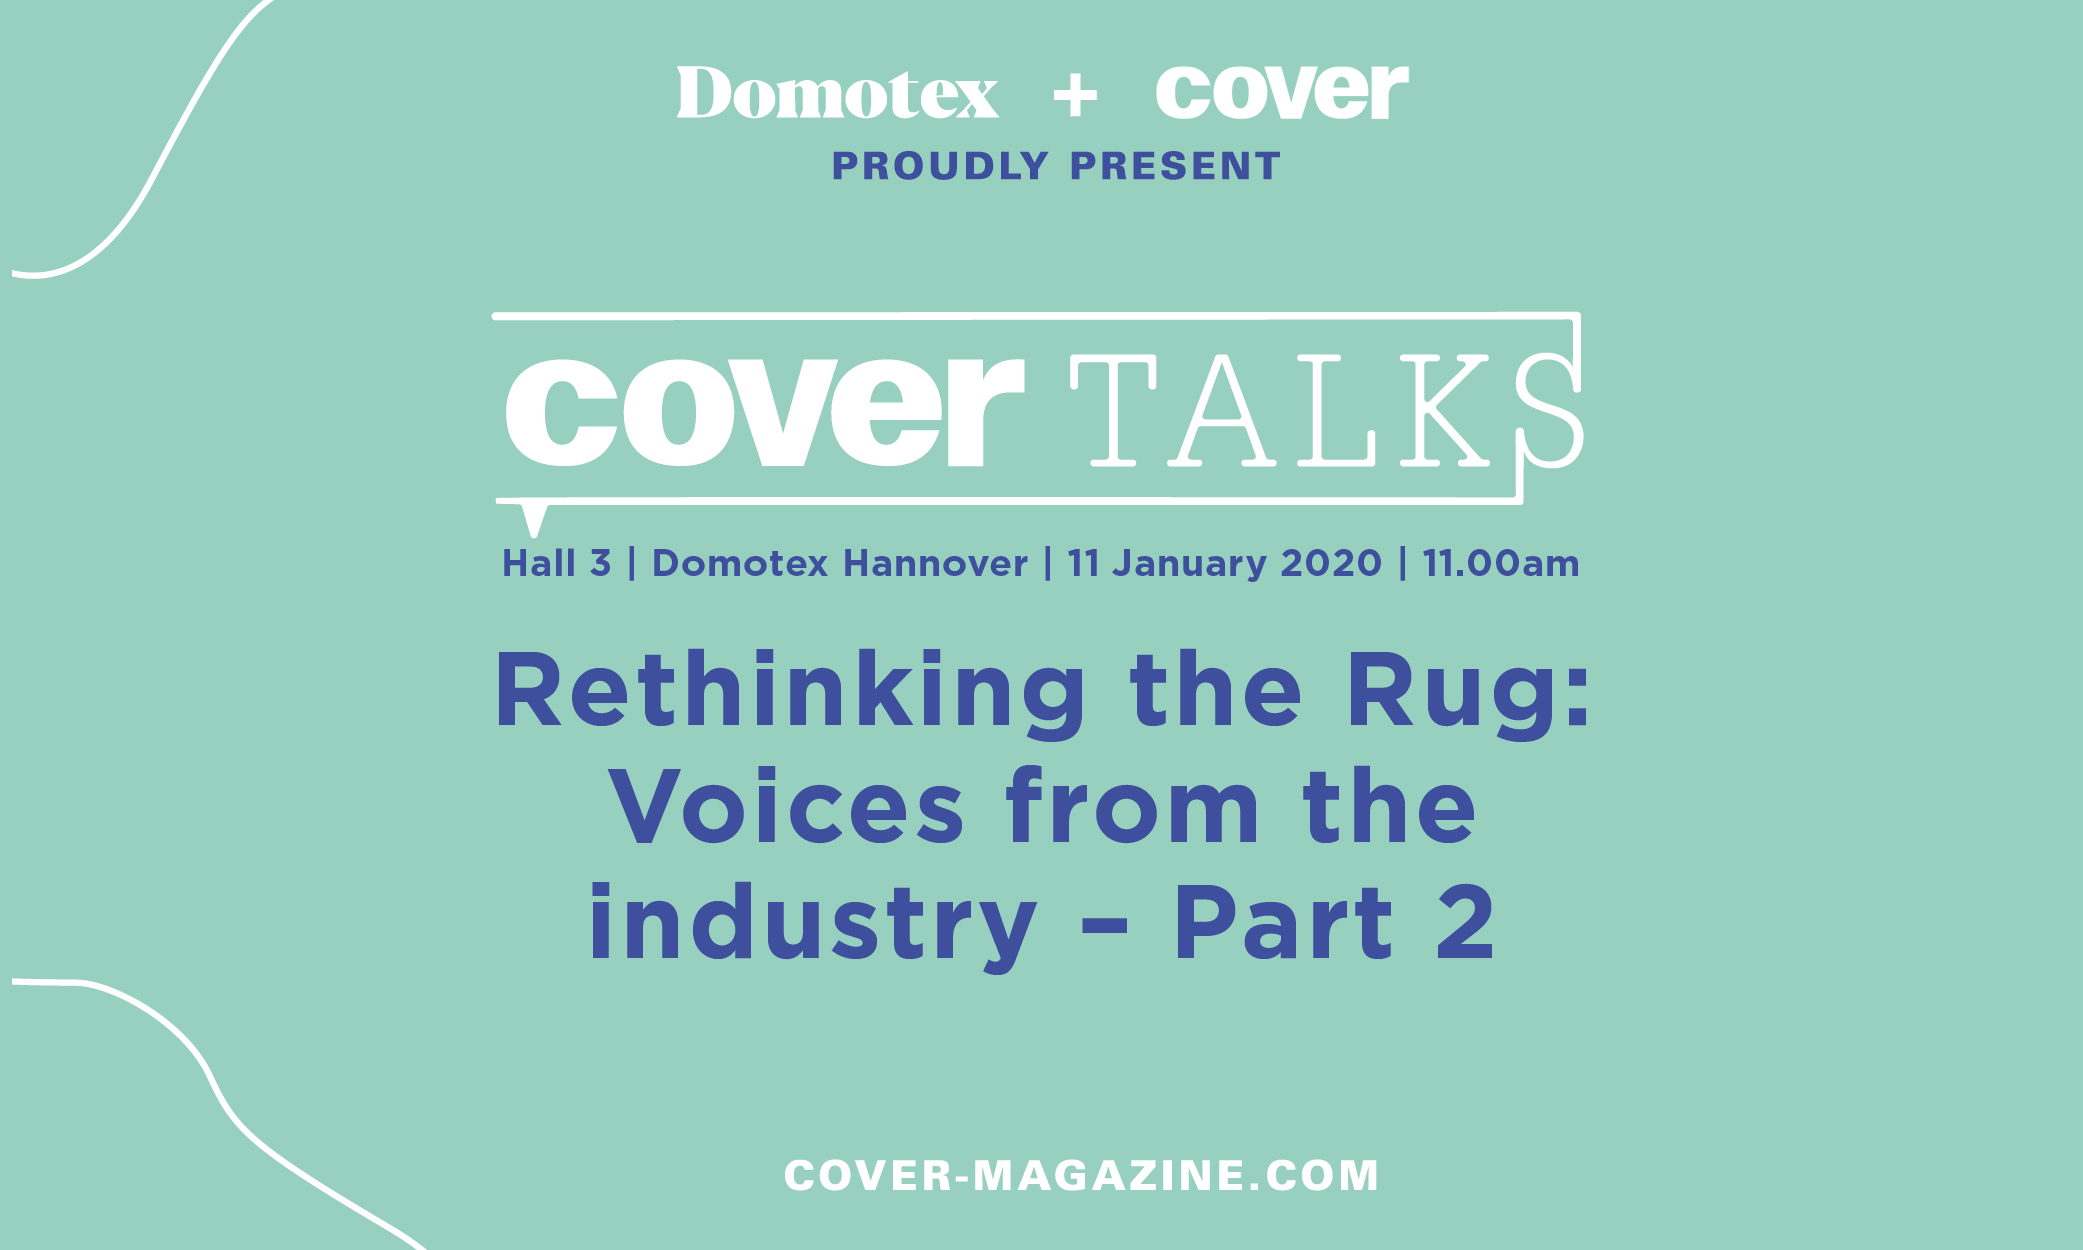 Rethinking the Rug: Voices from the industry — Part 2, Saturday 11 January, 11.00am